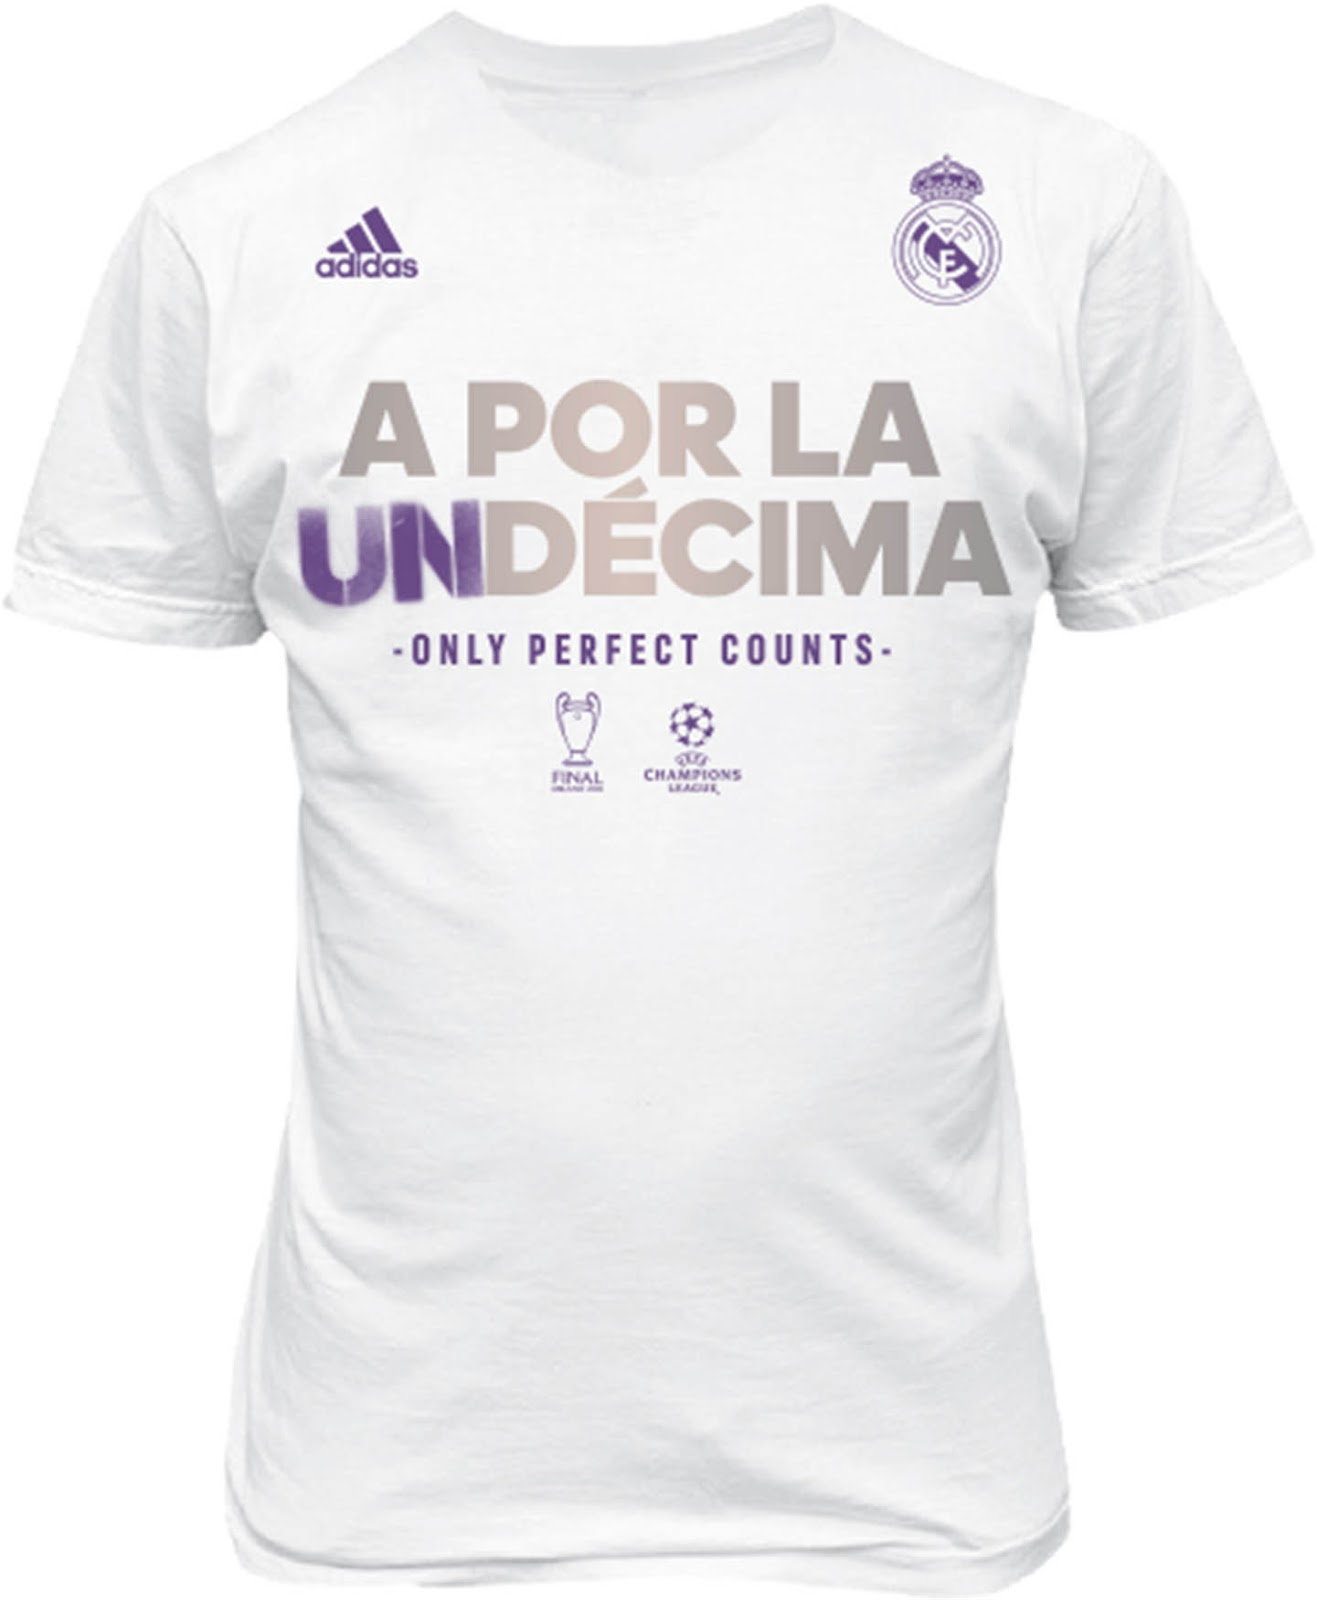 Champions League Final 2016: Real Madrid 2016 Champions League Final Shirt Revealed